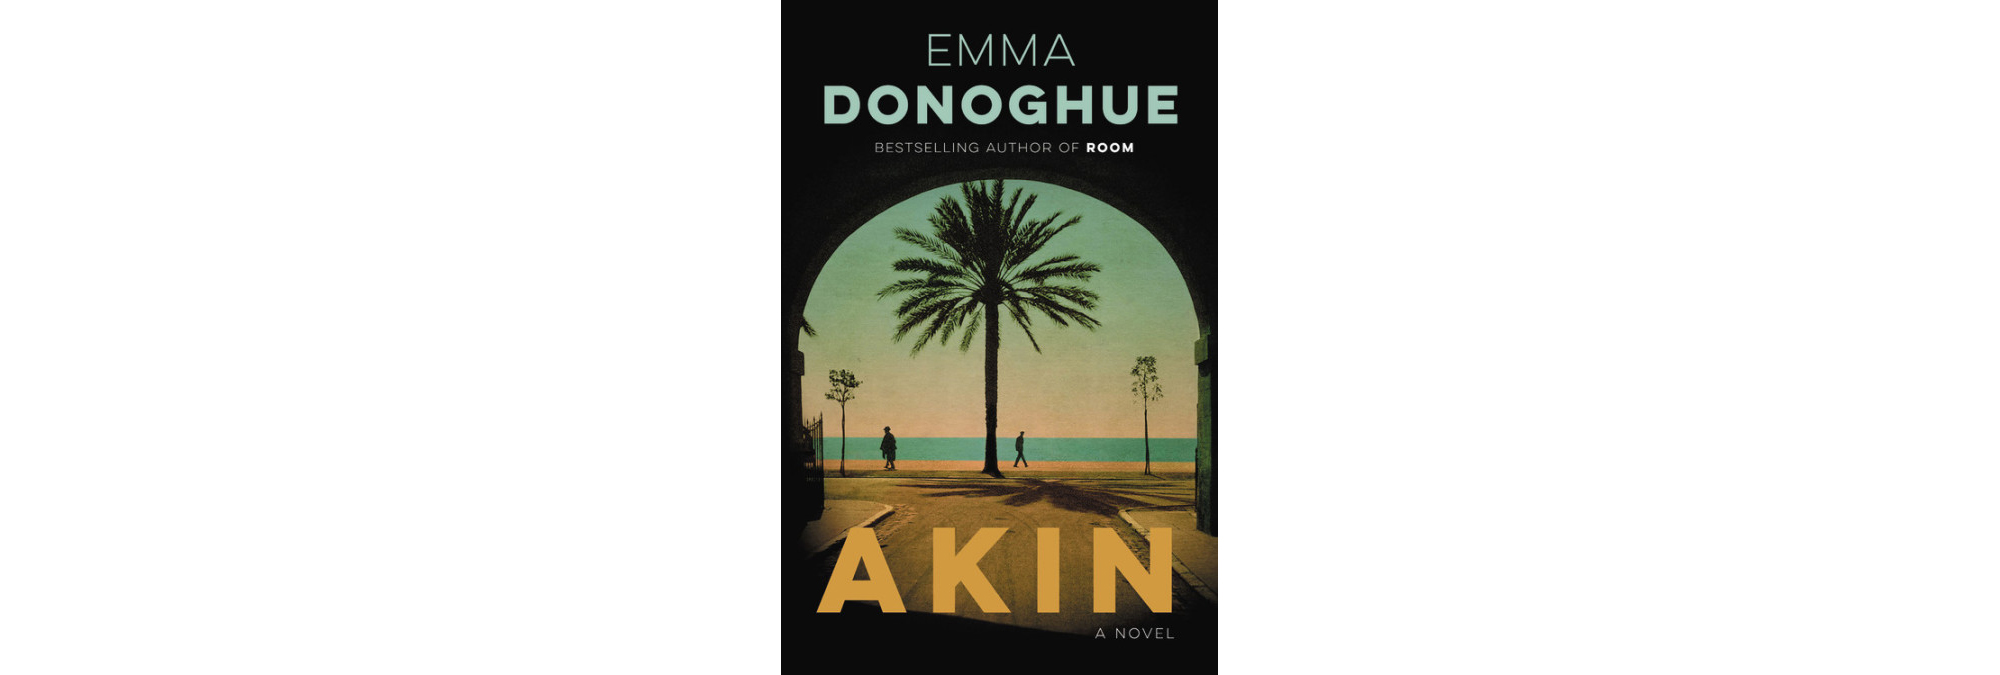 Cover of Akin, by Emma Donoghue